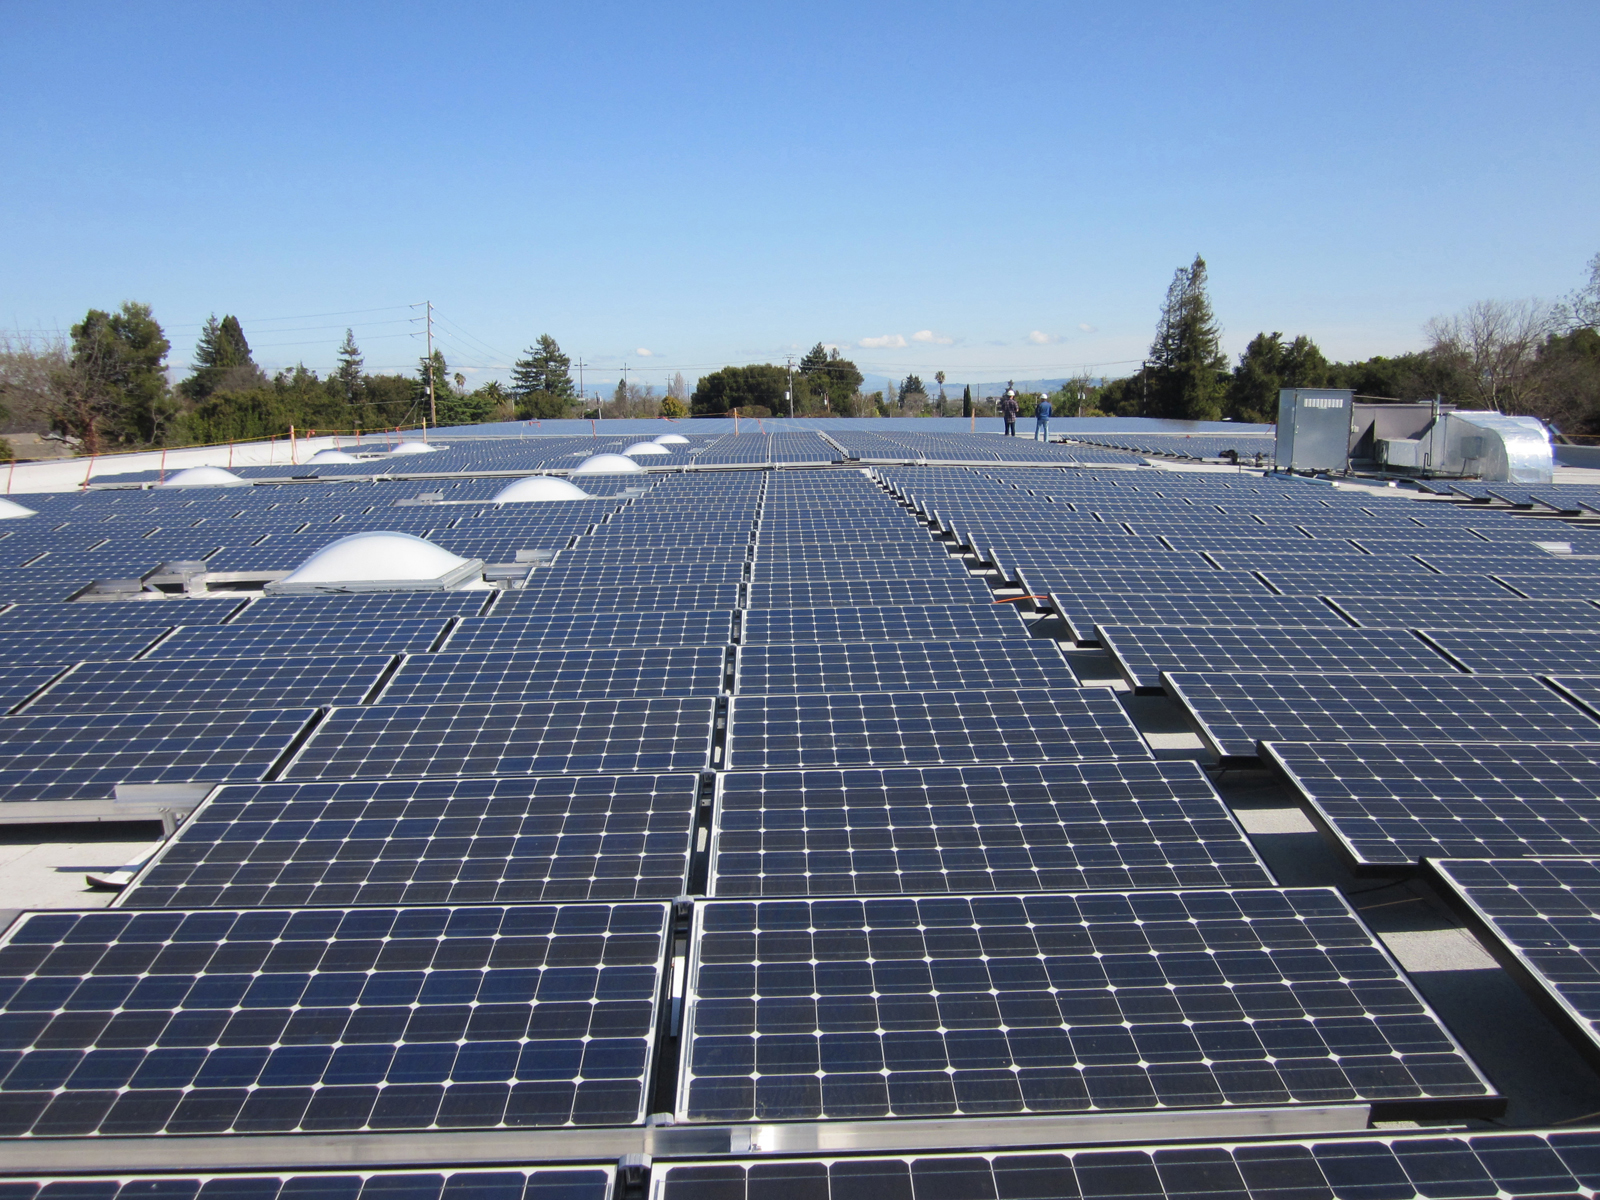 Veterans Affairs (VA) Medical Center Solar Array, Menlo Park, CA, solar array, structural engineering services